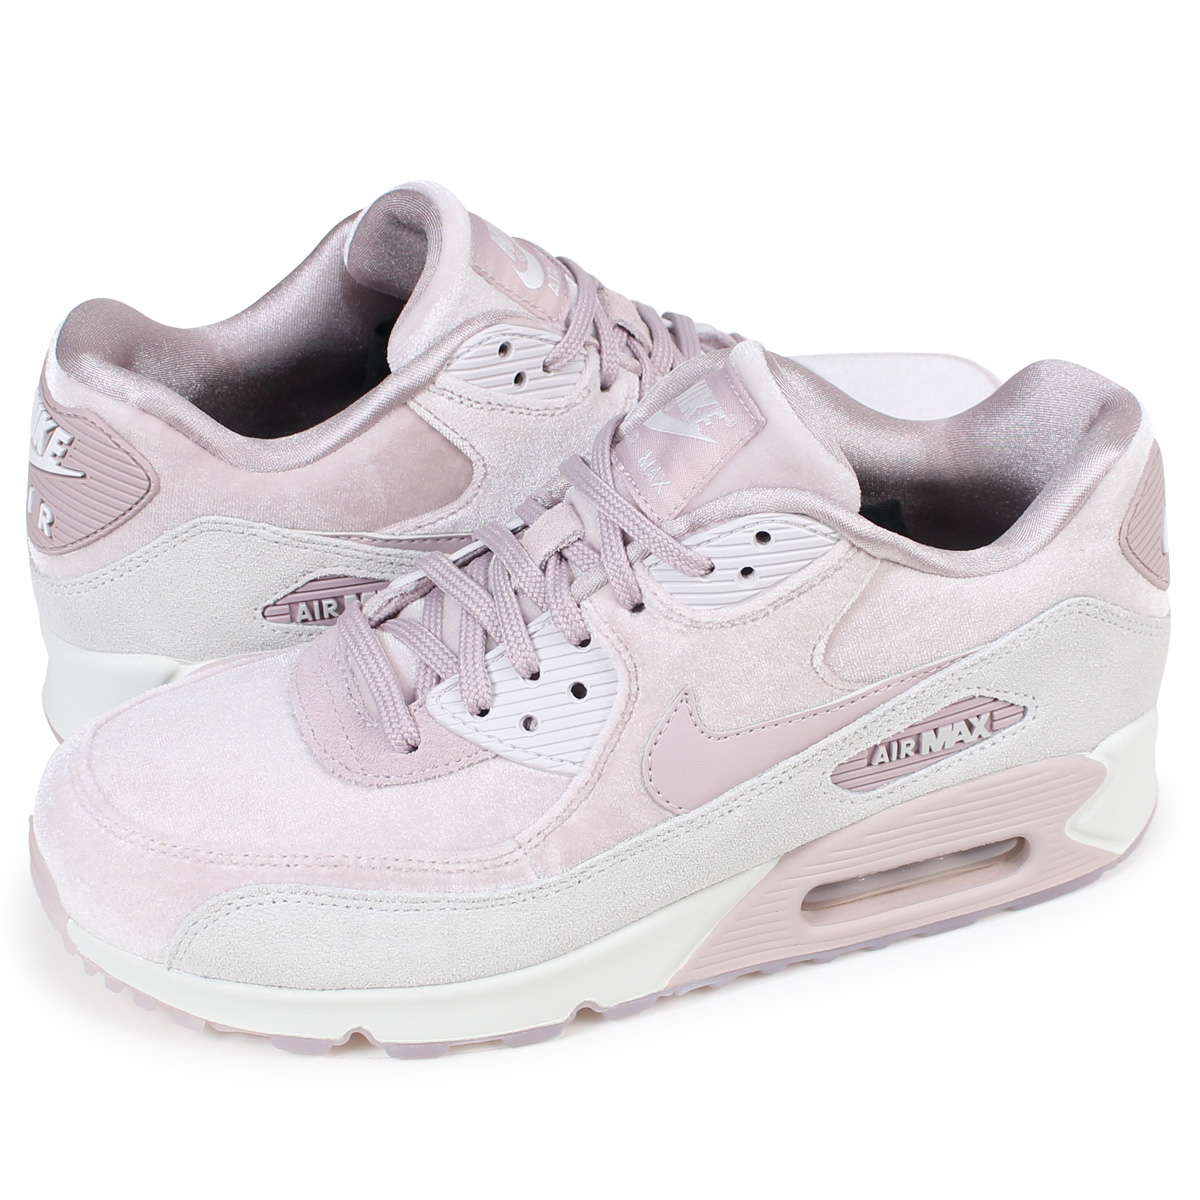 ALLSPORTS  NIKE WMNS AIR MAX 90 LX Kie Ney AMAX 90 Lady s sneakers ... 591218cd5